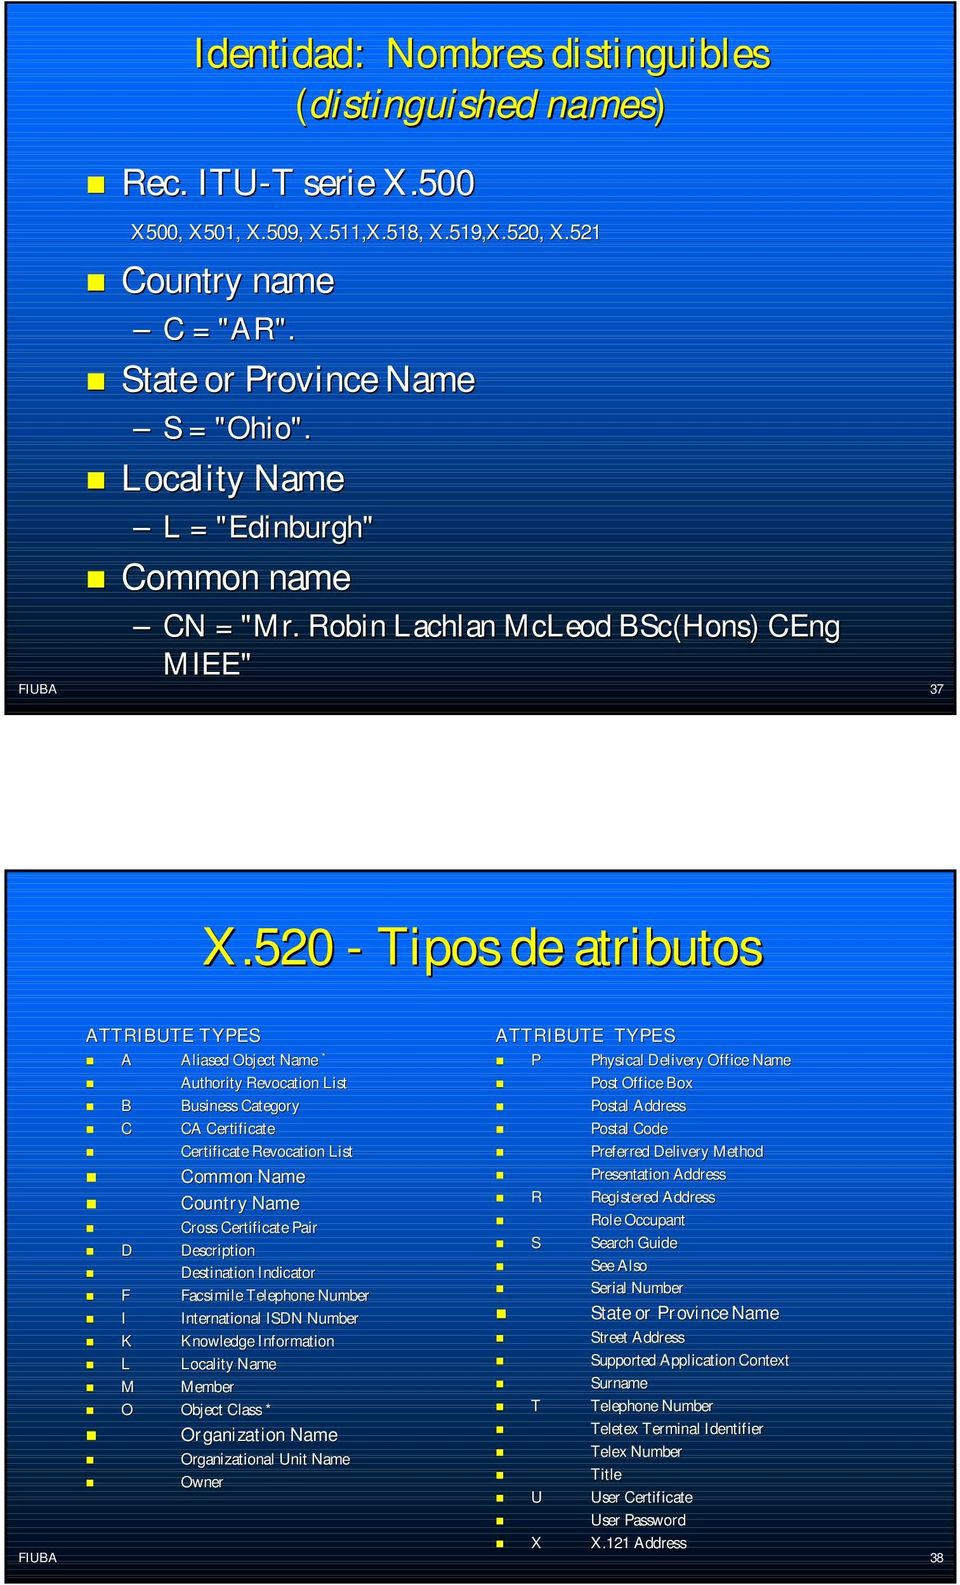 520 - Tipos de atributos ATTRIBUTE TYPES ATTRIBUTE TYPES A Aliased Object Name * P Physical Delivery Office Name Authority Revocation List Post Office Box B Business Category Postal Address C CA